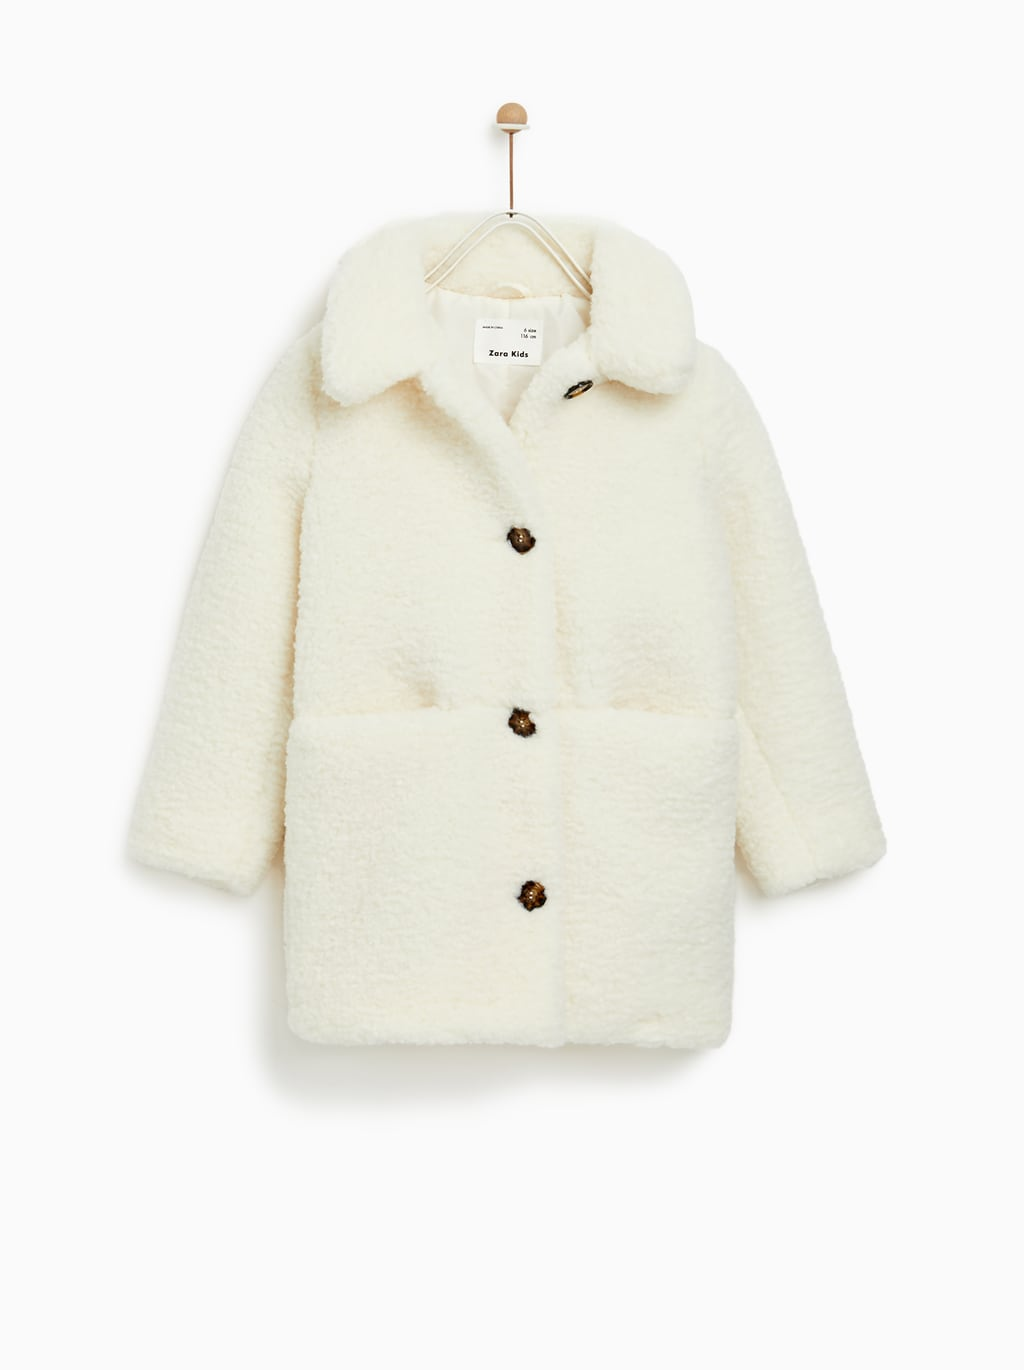 Teddy Coat Blanc Zara Kids